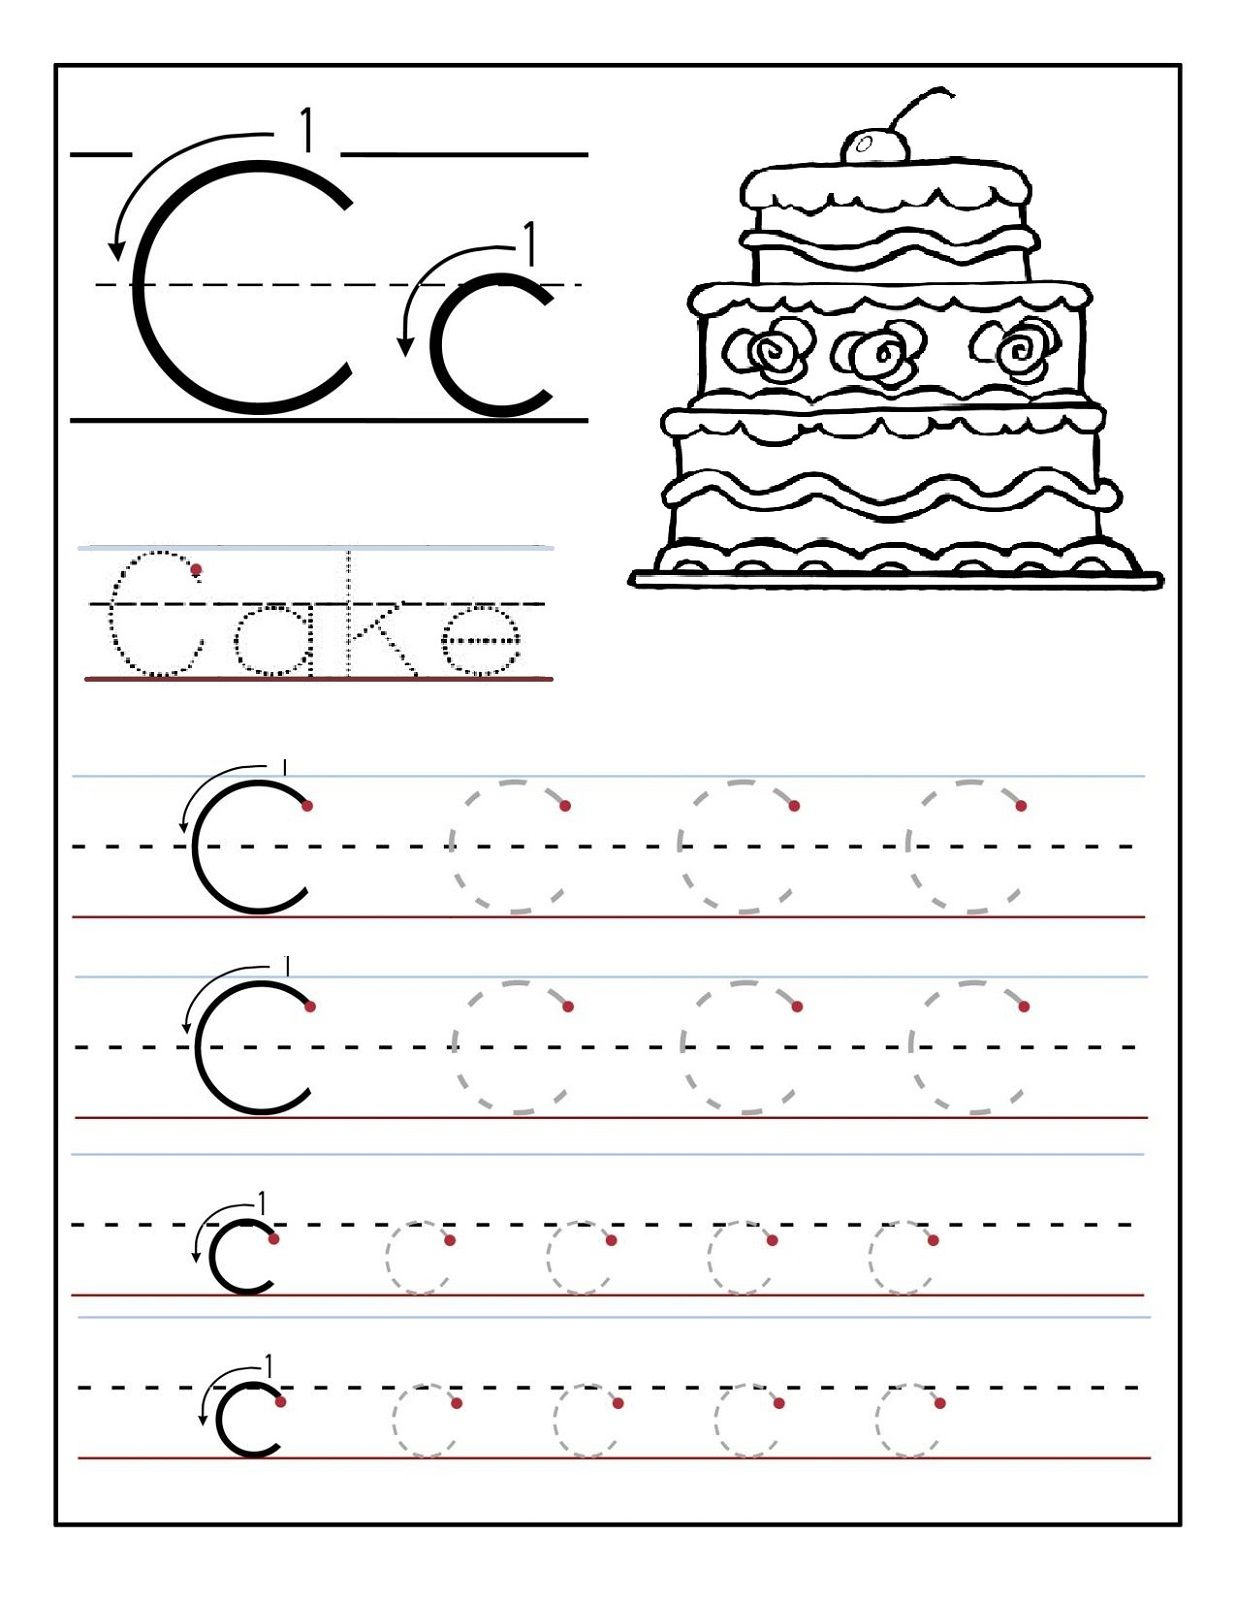 Trace The Letter C Worksheets | Preschool Letters, Letter